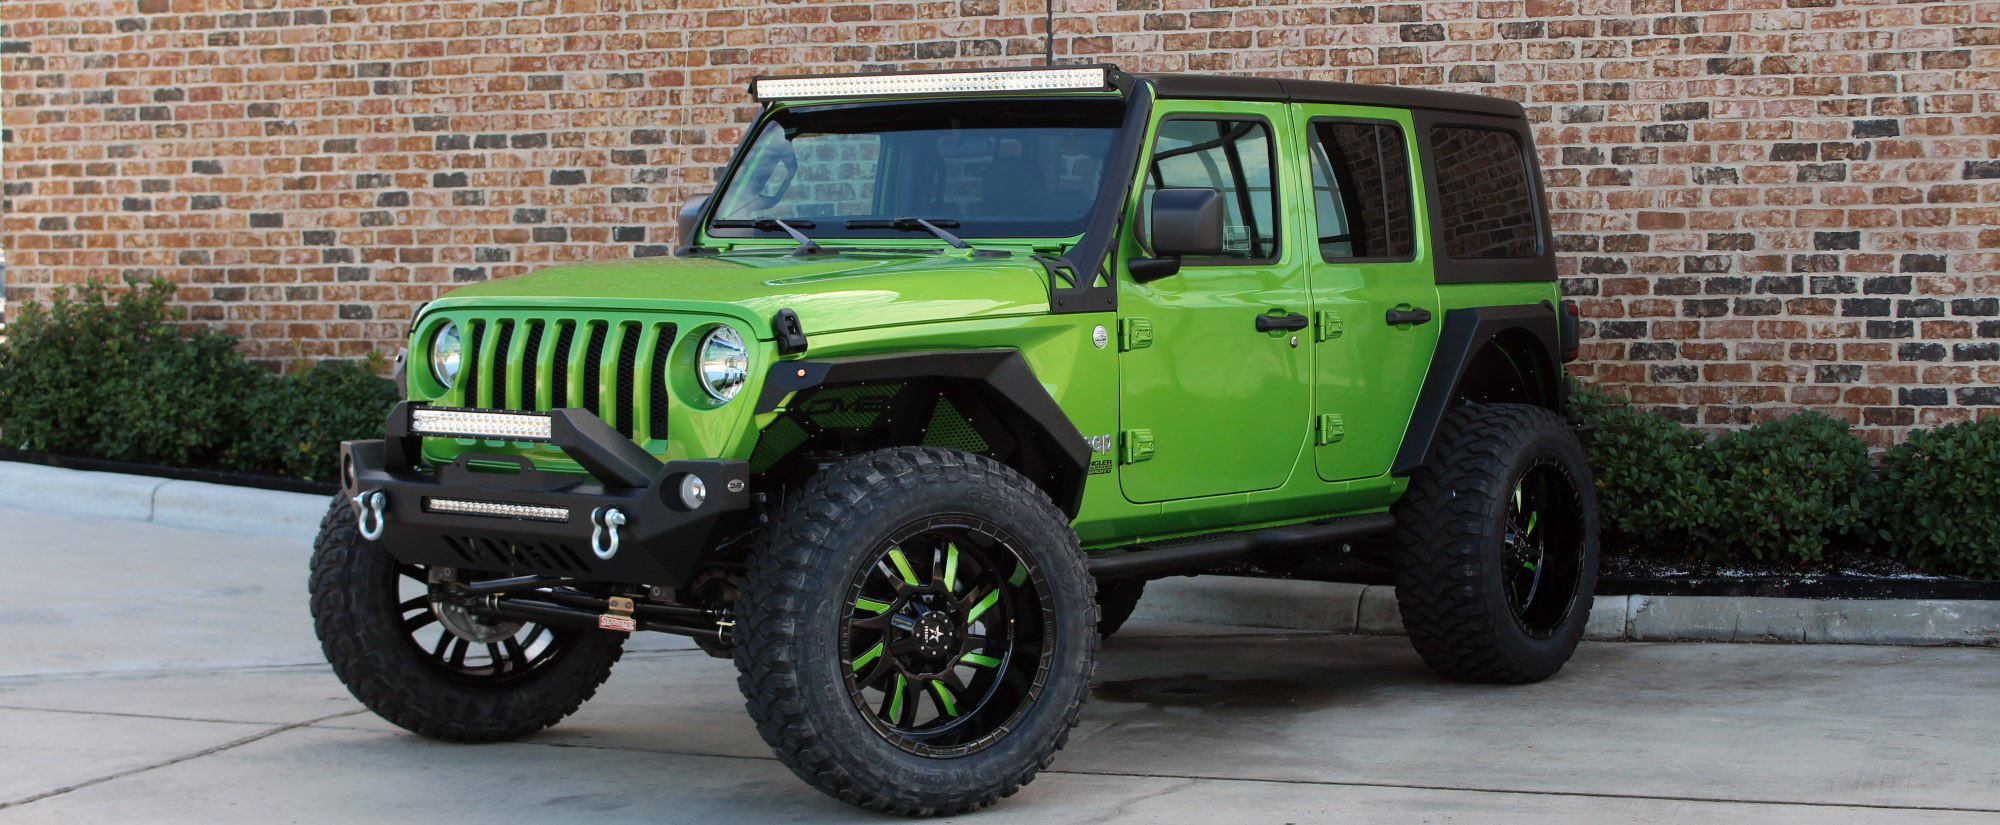 2018 jeep wrangler unlimited jl green